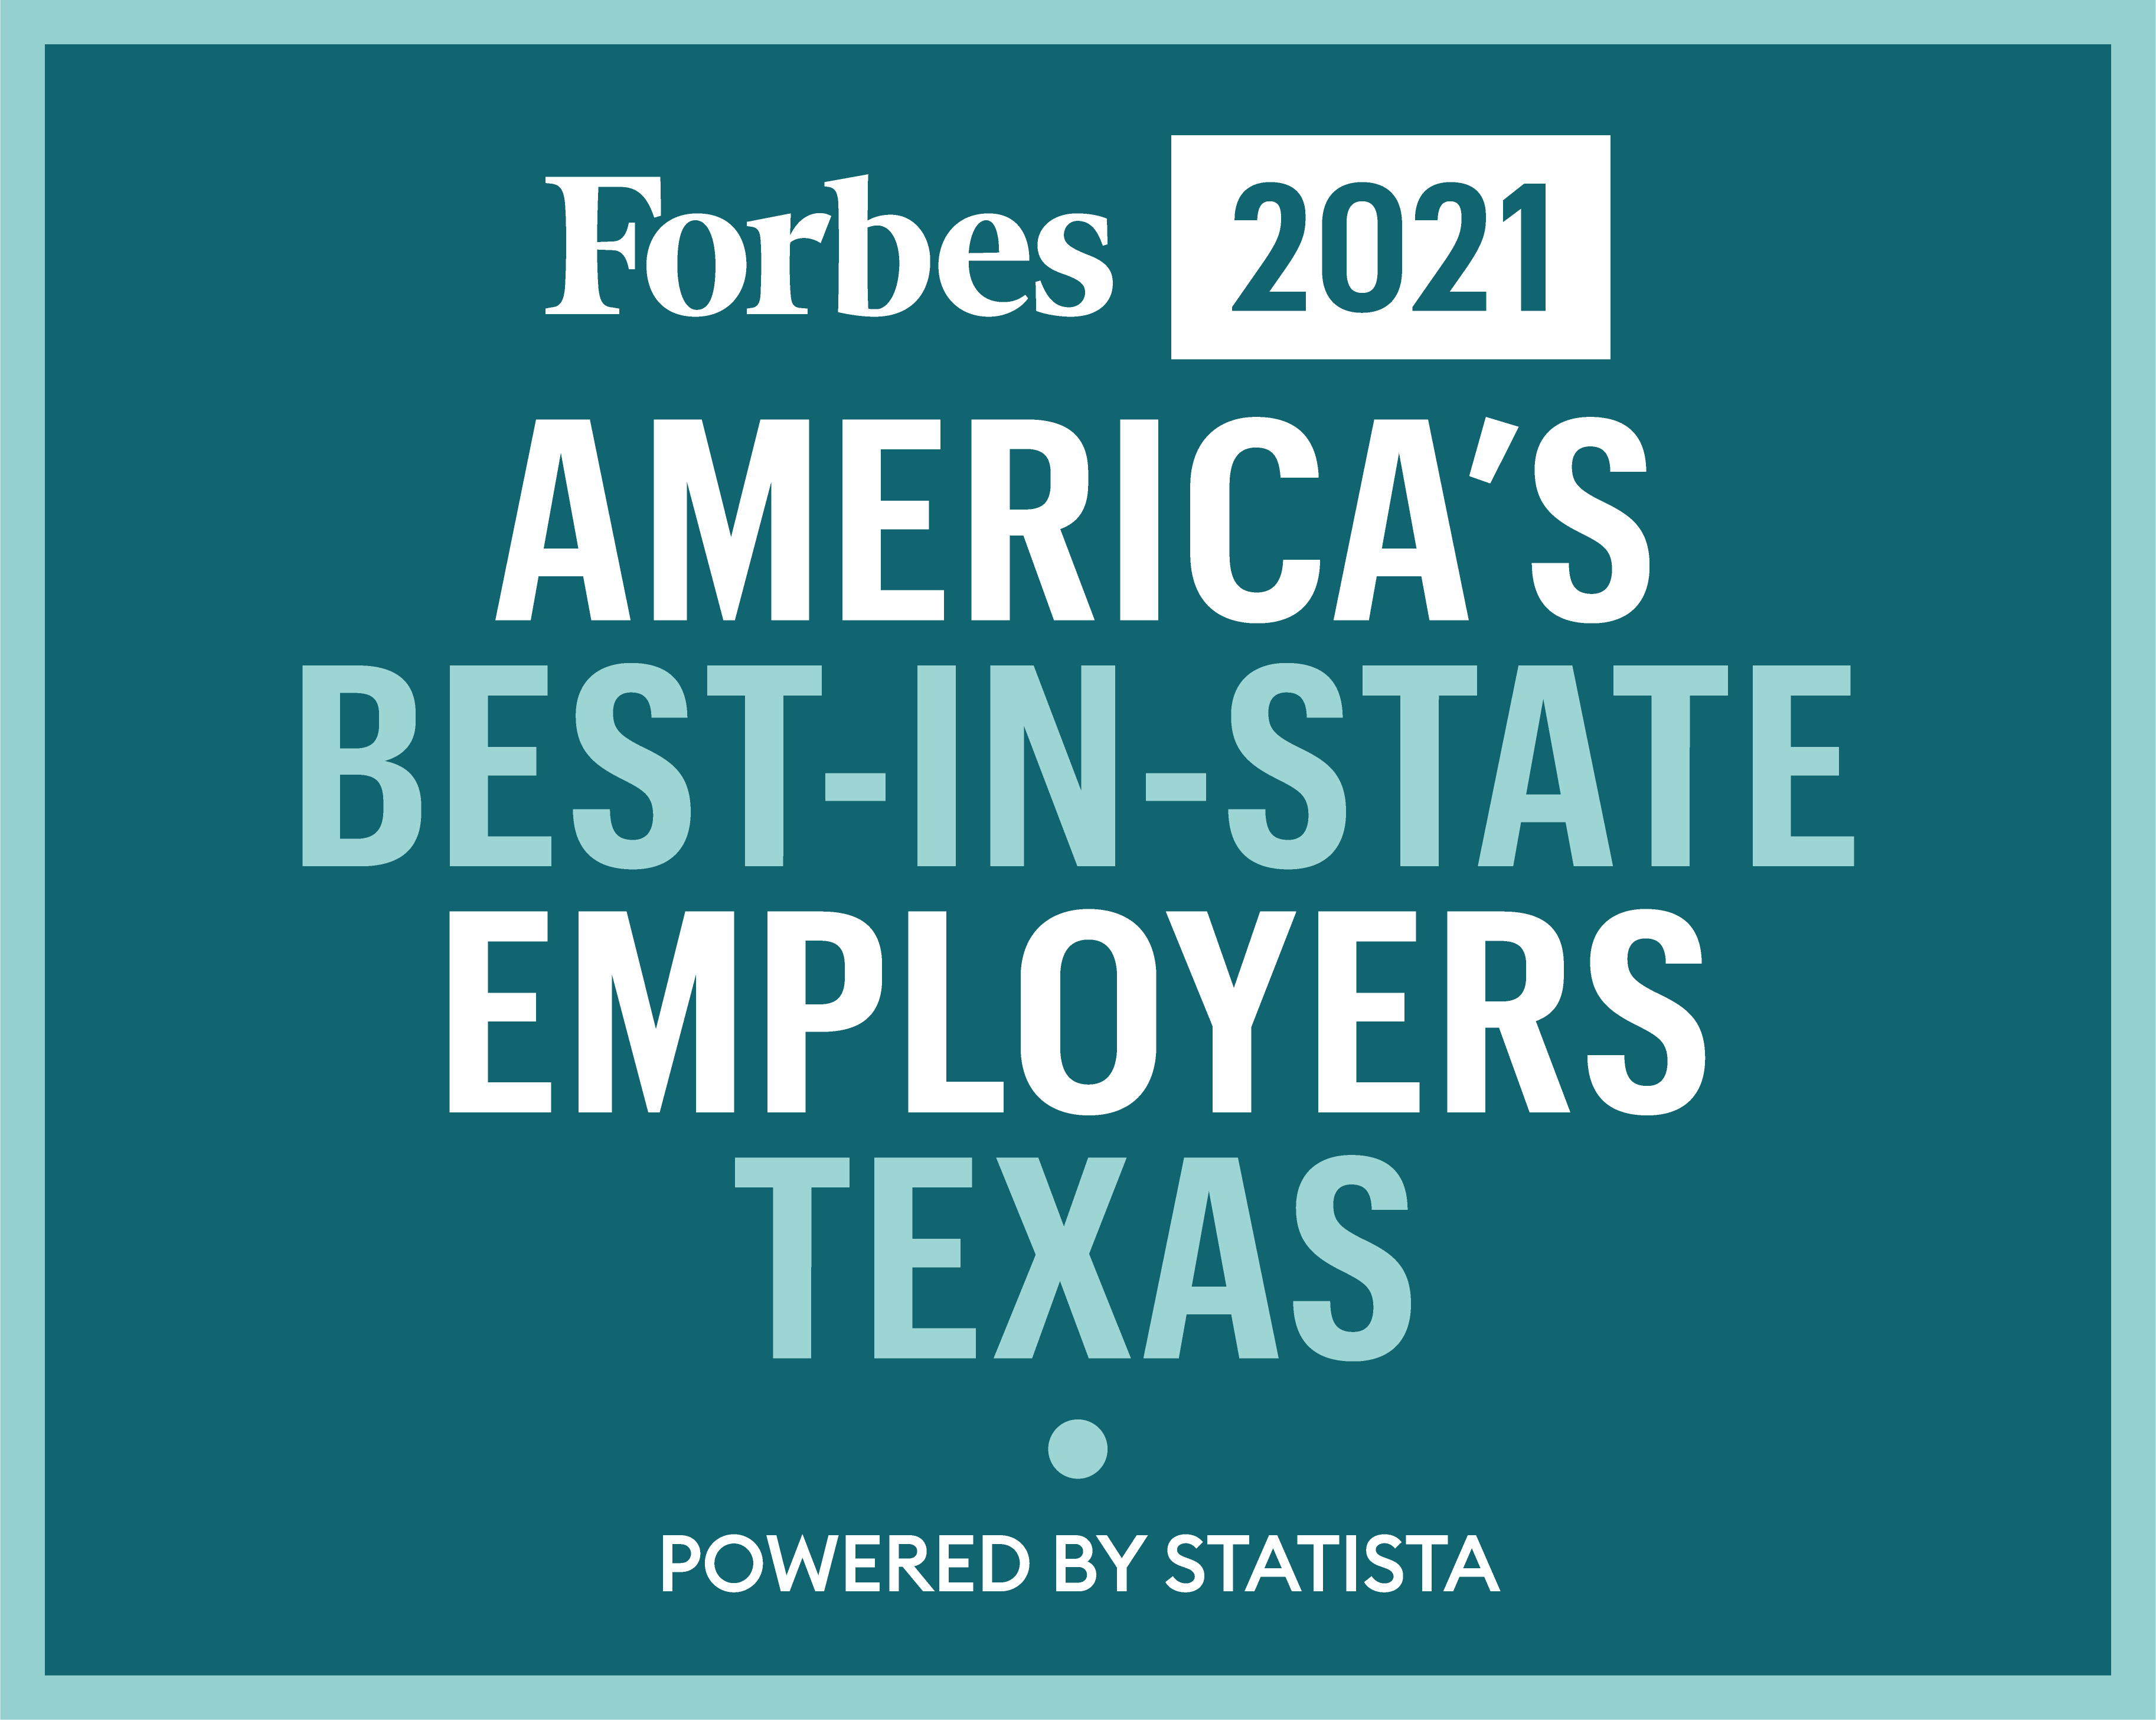 2021 Forbes Best In State Employers in Texas